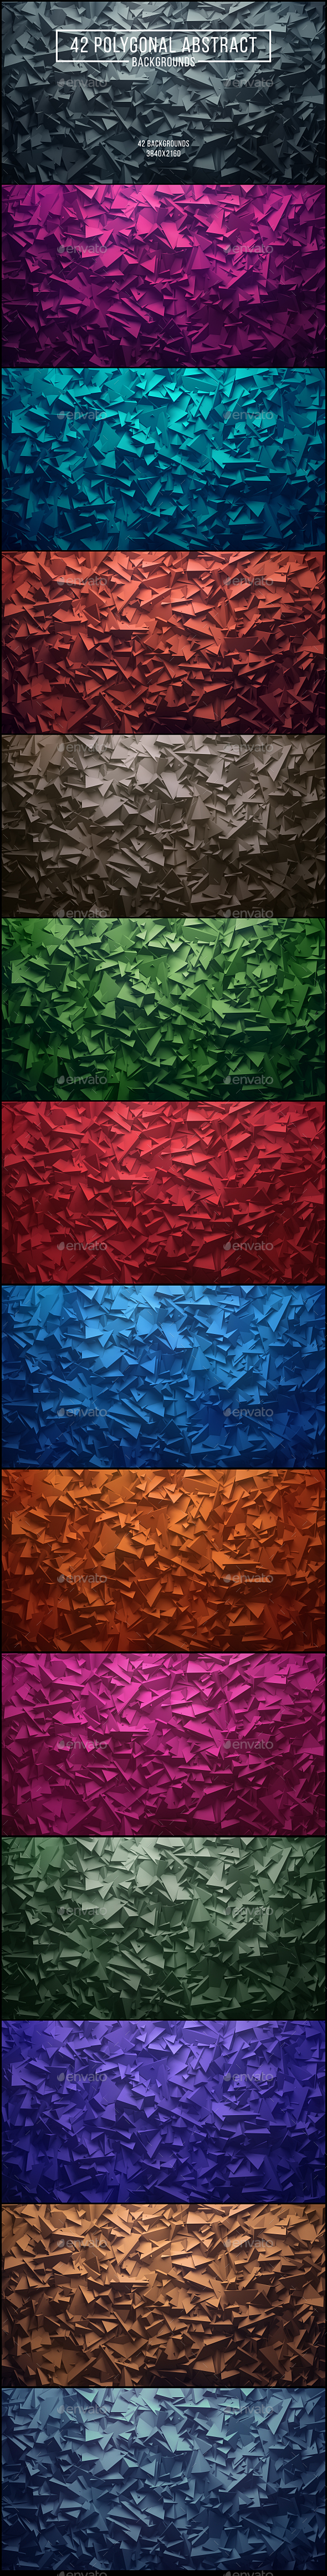 42 Polygonal Abstract Backgrounds